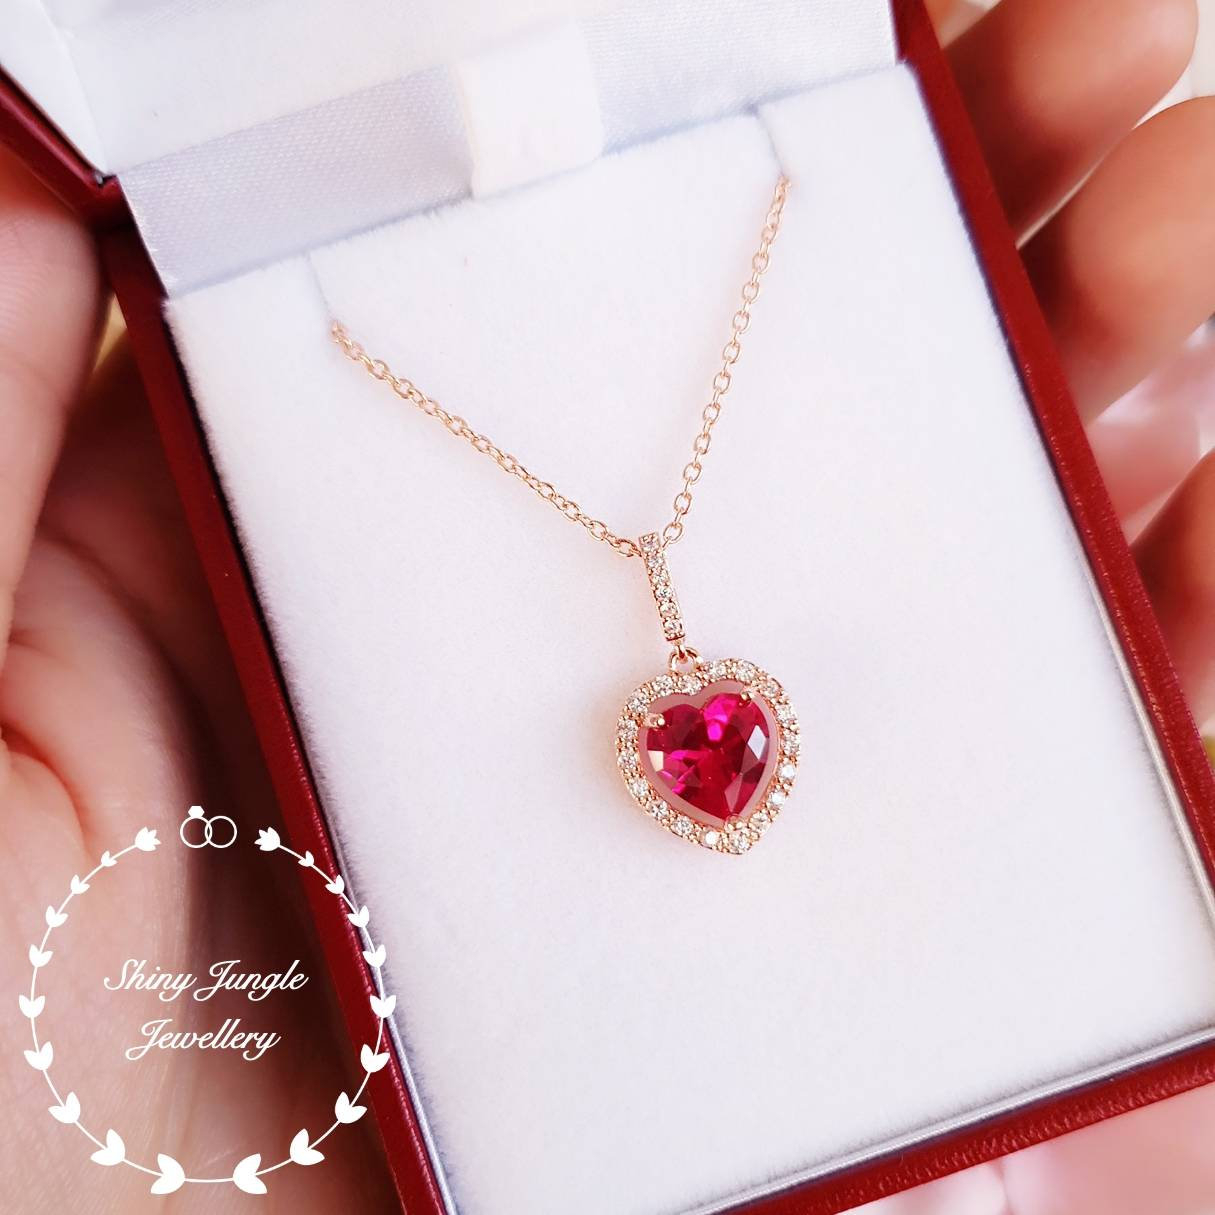 Halo Heart Shaped Ruby Necklace, Rose Gold Plated Heart Cut Ruby Intended For Most Popular Red July Birthstone Locket Element Necklaces (Gallery 14 of 25)